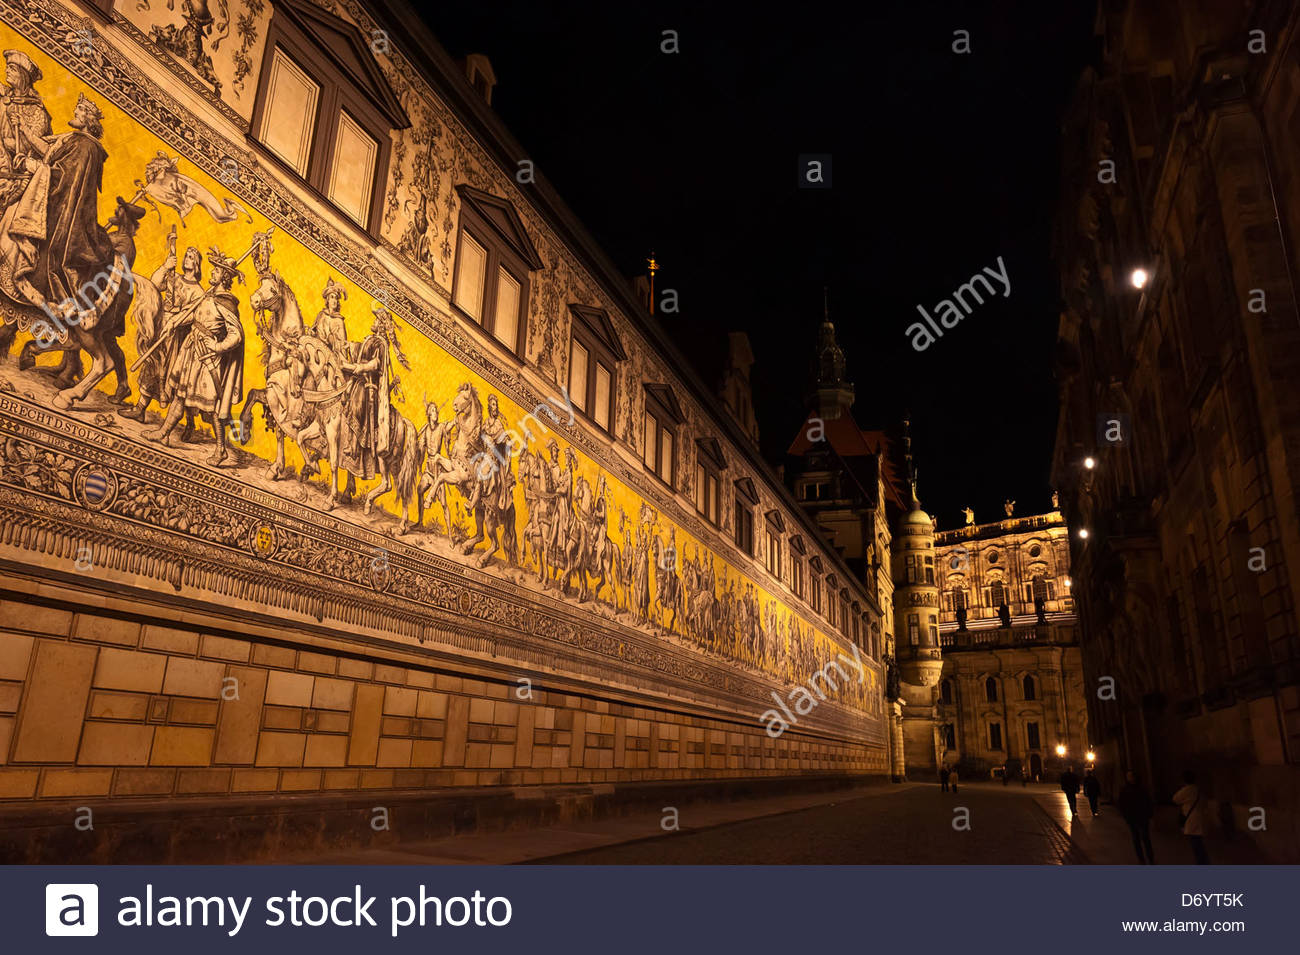 The 100 meter long Procession of Princes (the largest porcelain image in the world, made up of 25,000 tiles) which - Stock Image